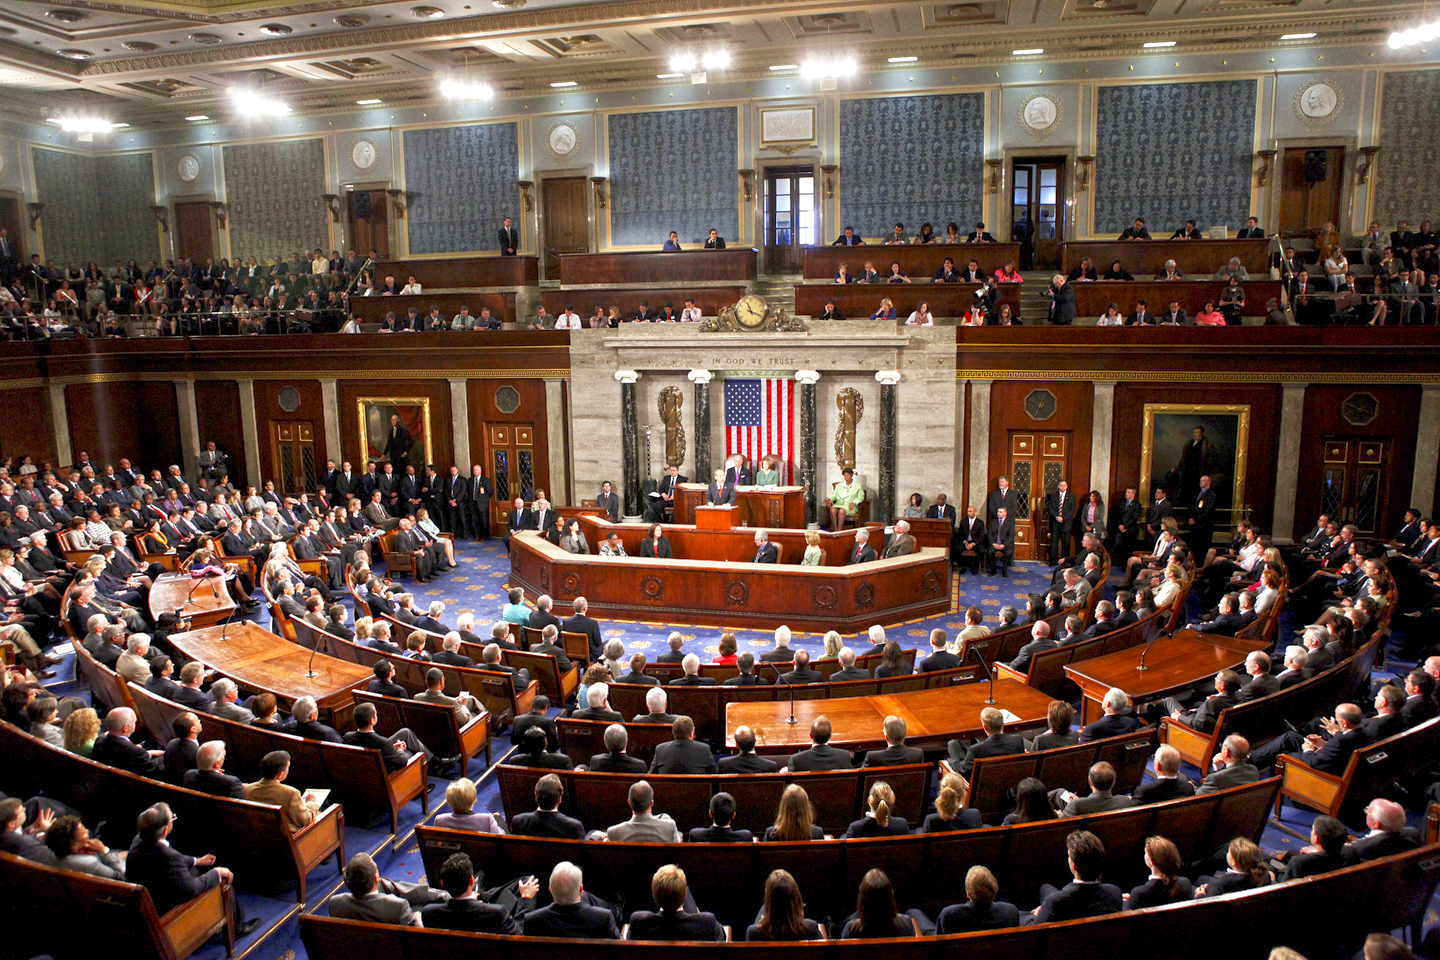 The United States Congress convenes during the 112th session in 2012 ( Image )